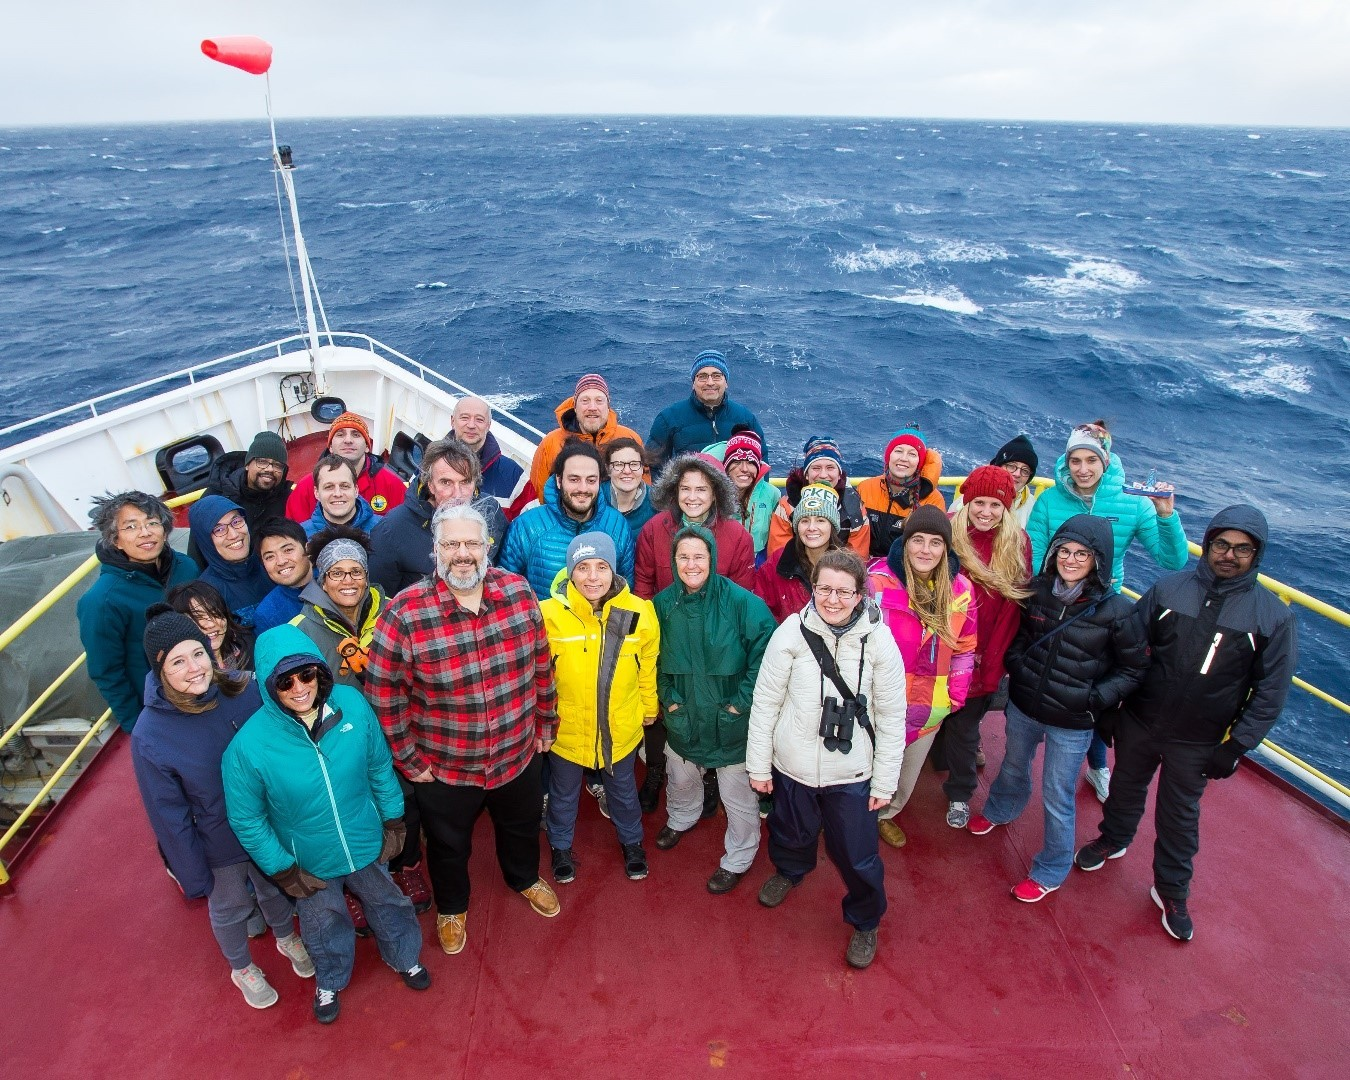 The JOIDES Resolution at sea during research project co-led by Columbia's Gisela Winckler